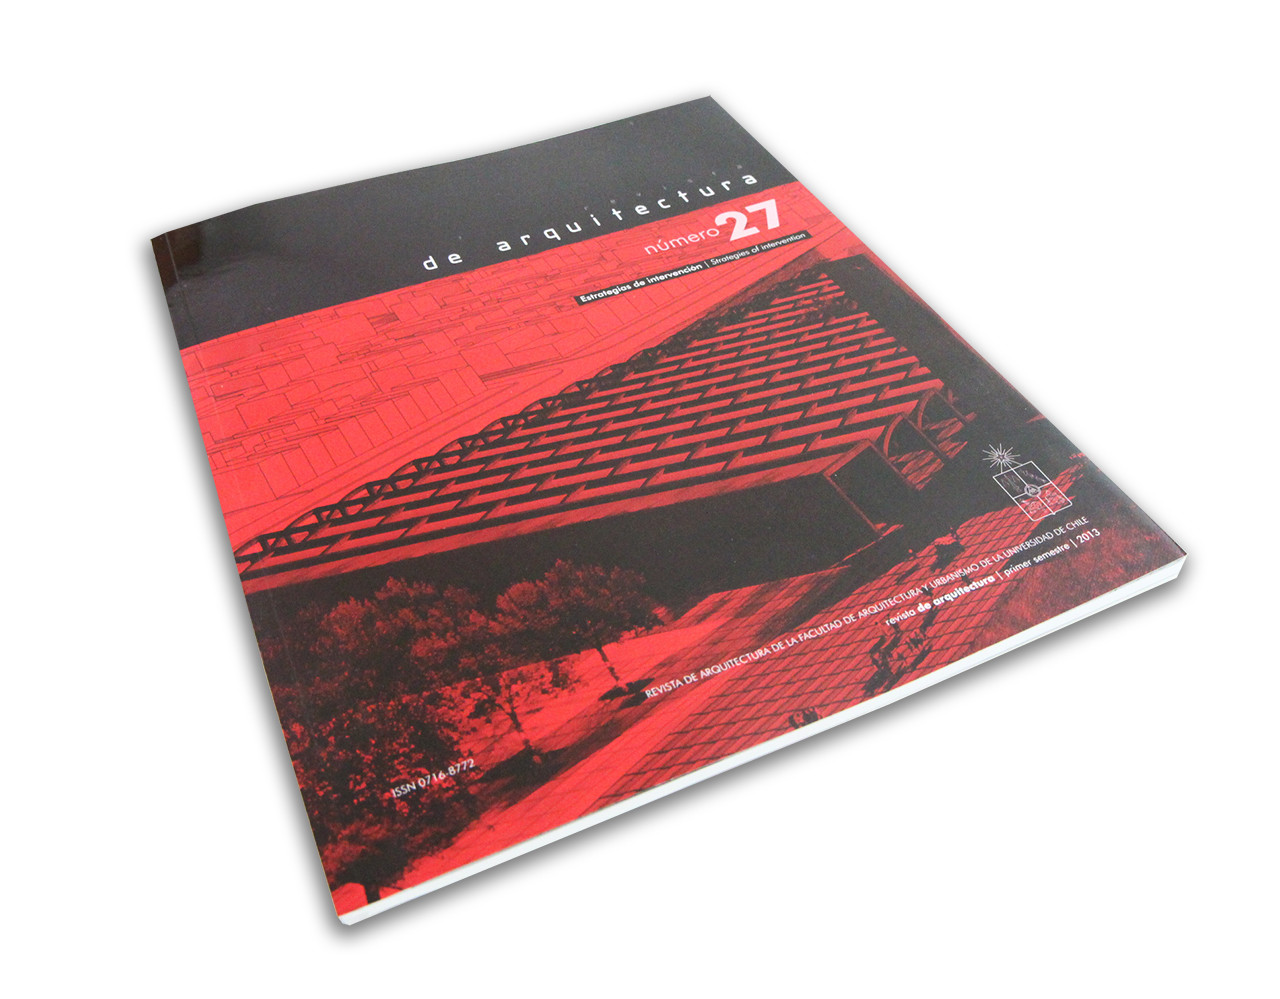 Revista de Arquitectura #27 / FAU Universidad de Chile